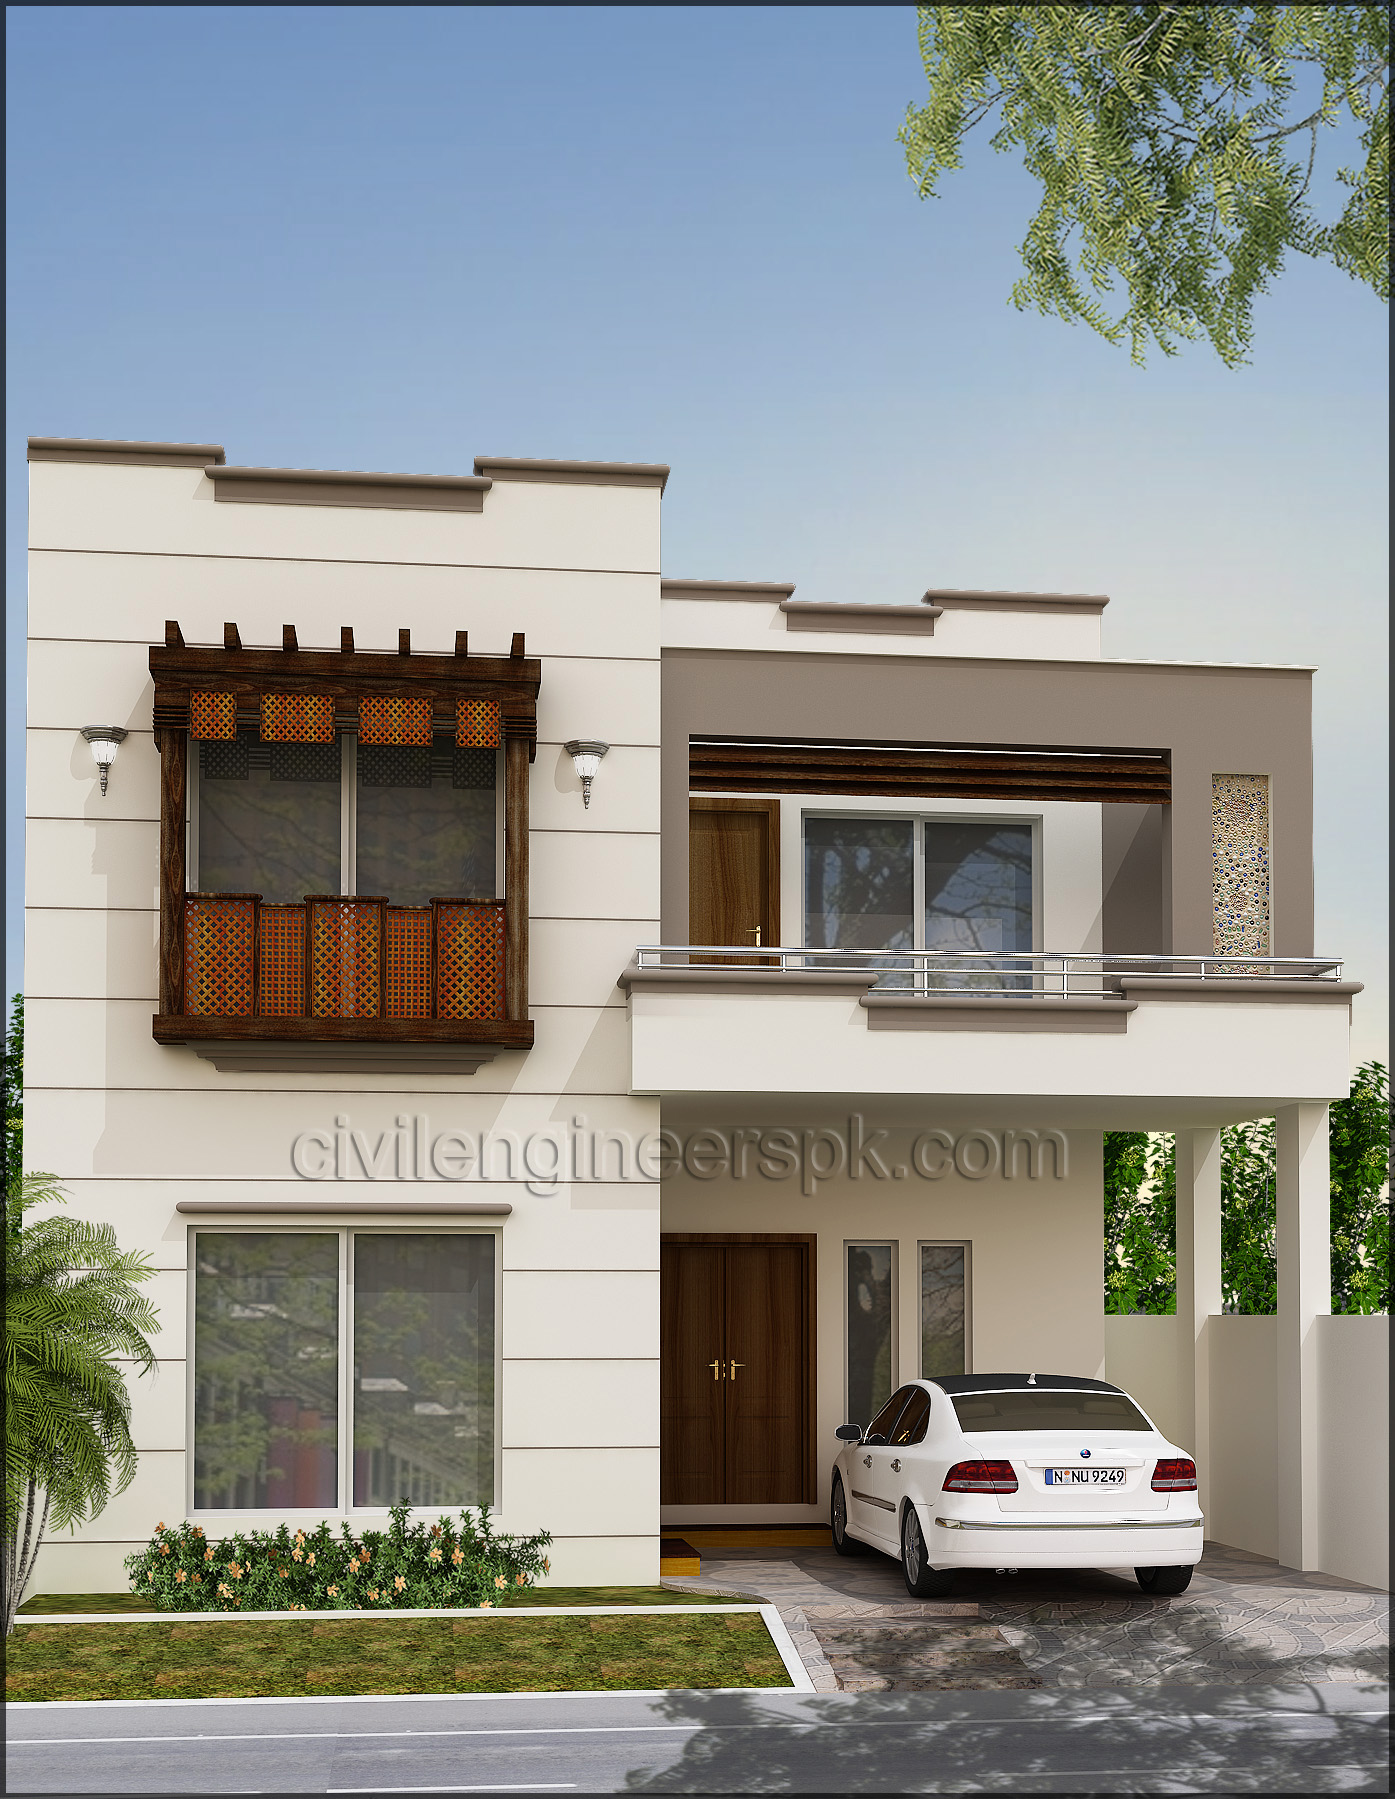 5 Marla Front Elevation Designs : House front views civil engineers pk